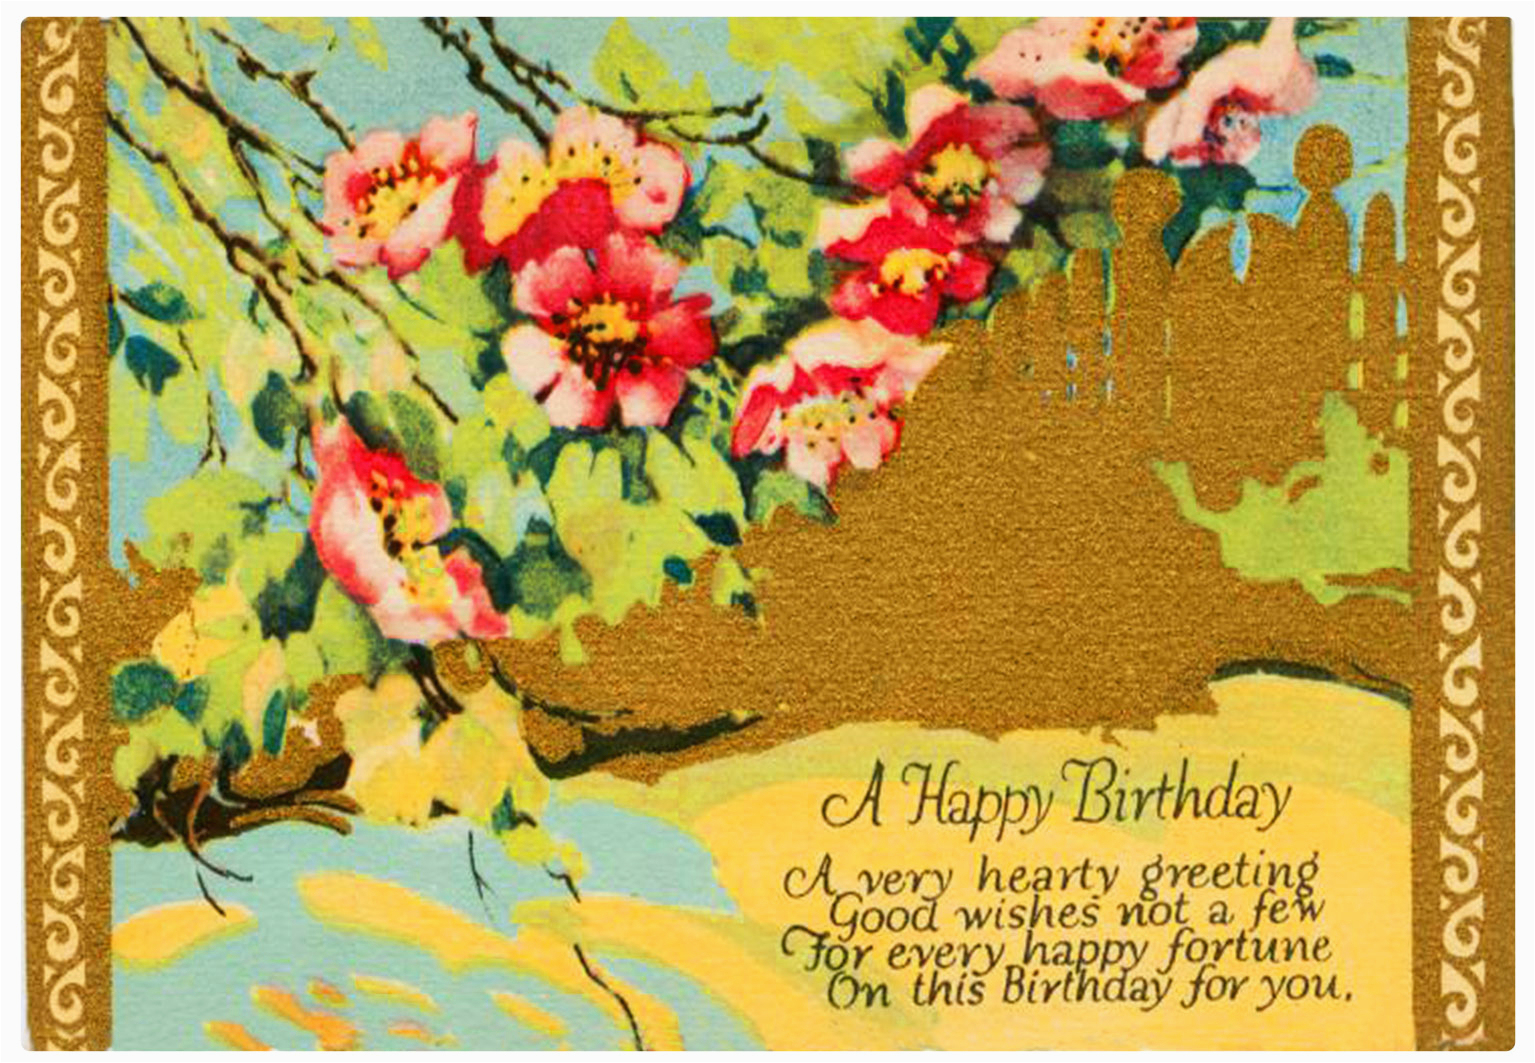 Make Birthday Cards Online For Free   Birthdaybuzz - Make Your Own Printable Birthday Cards Online Free